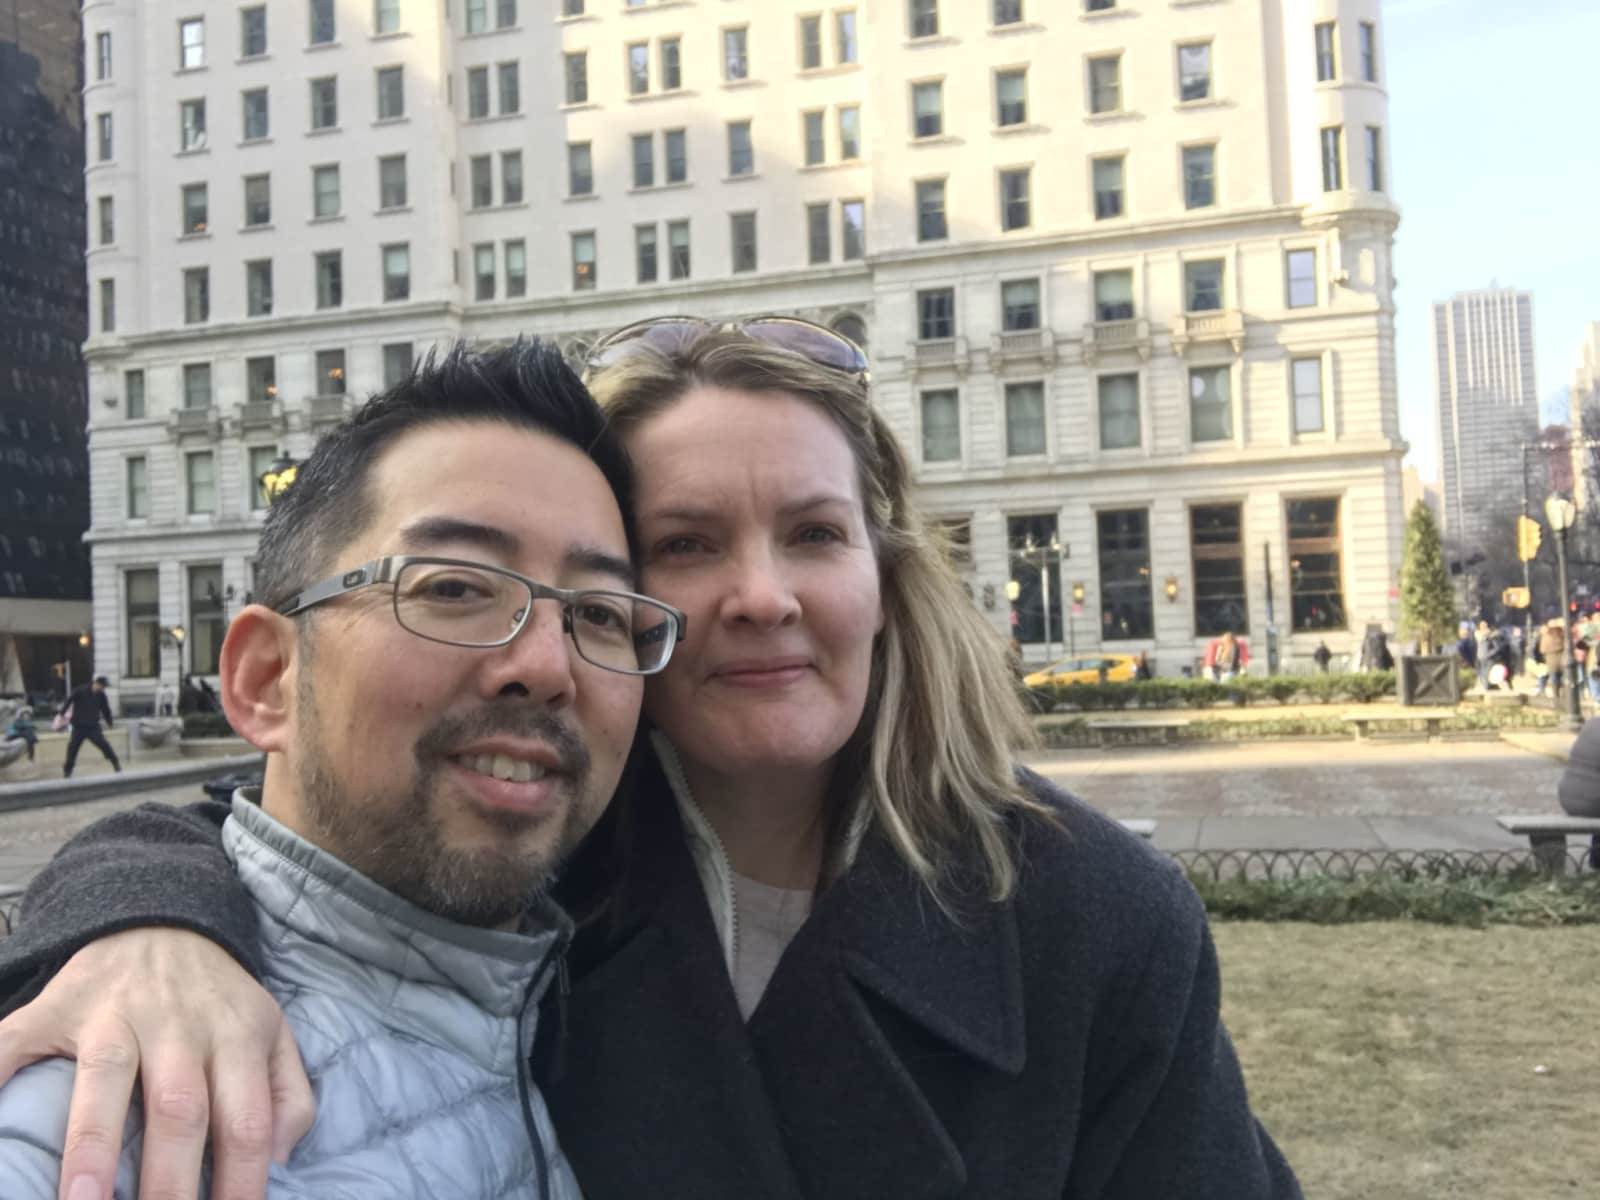 Katherine & Ken from Ashburn, Virginia, United States